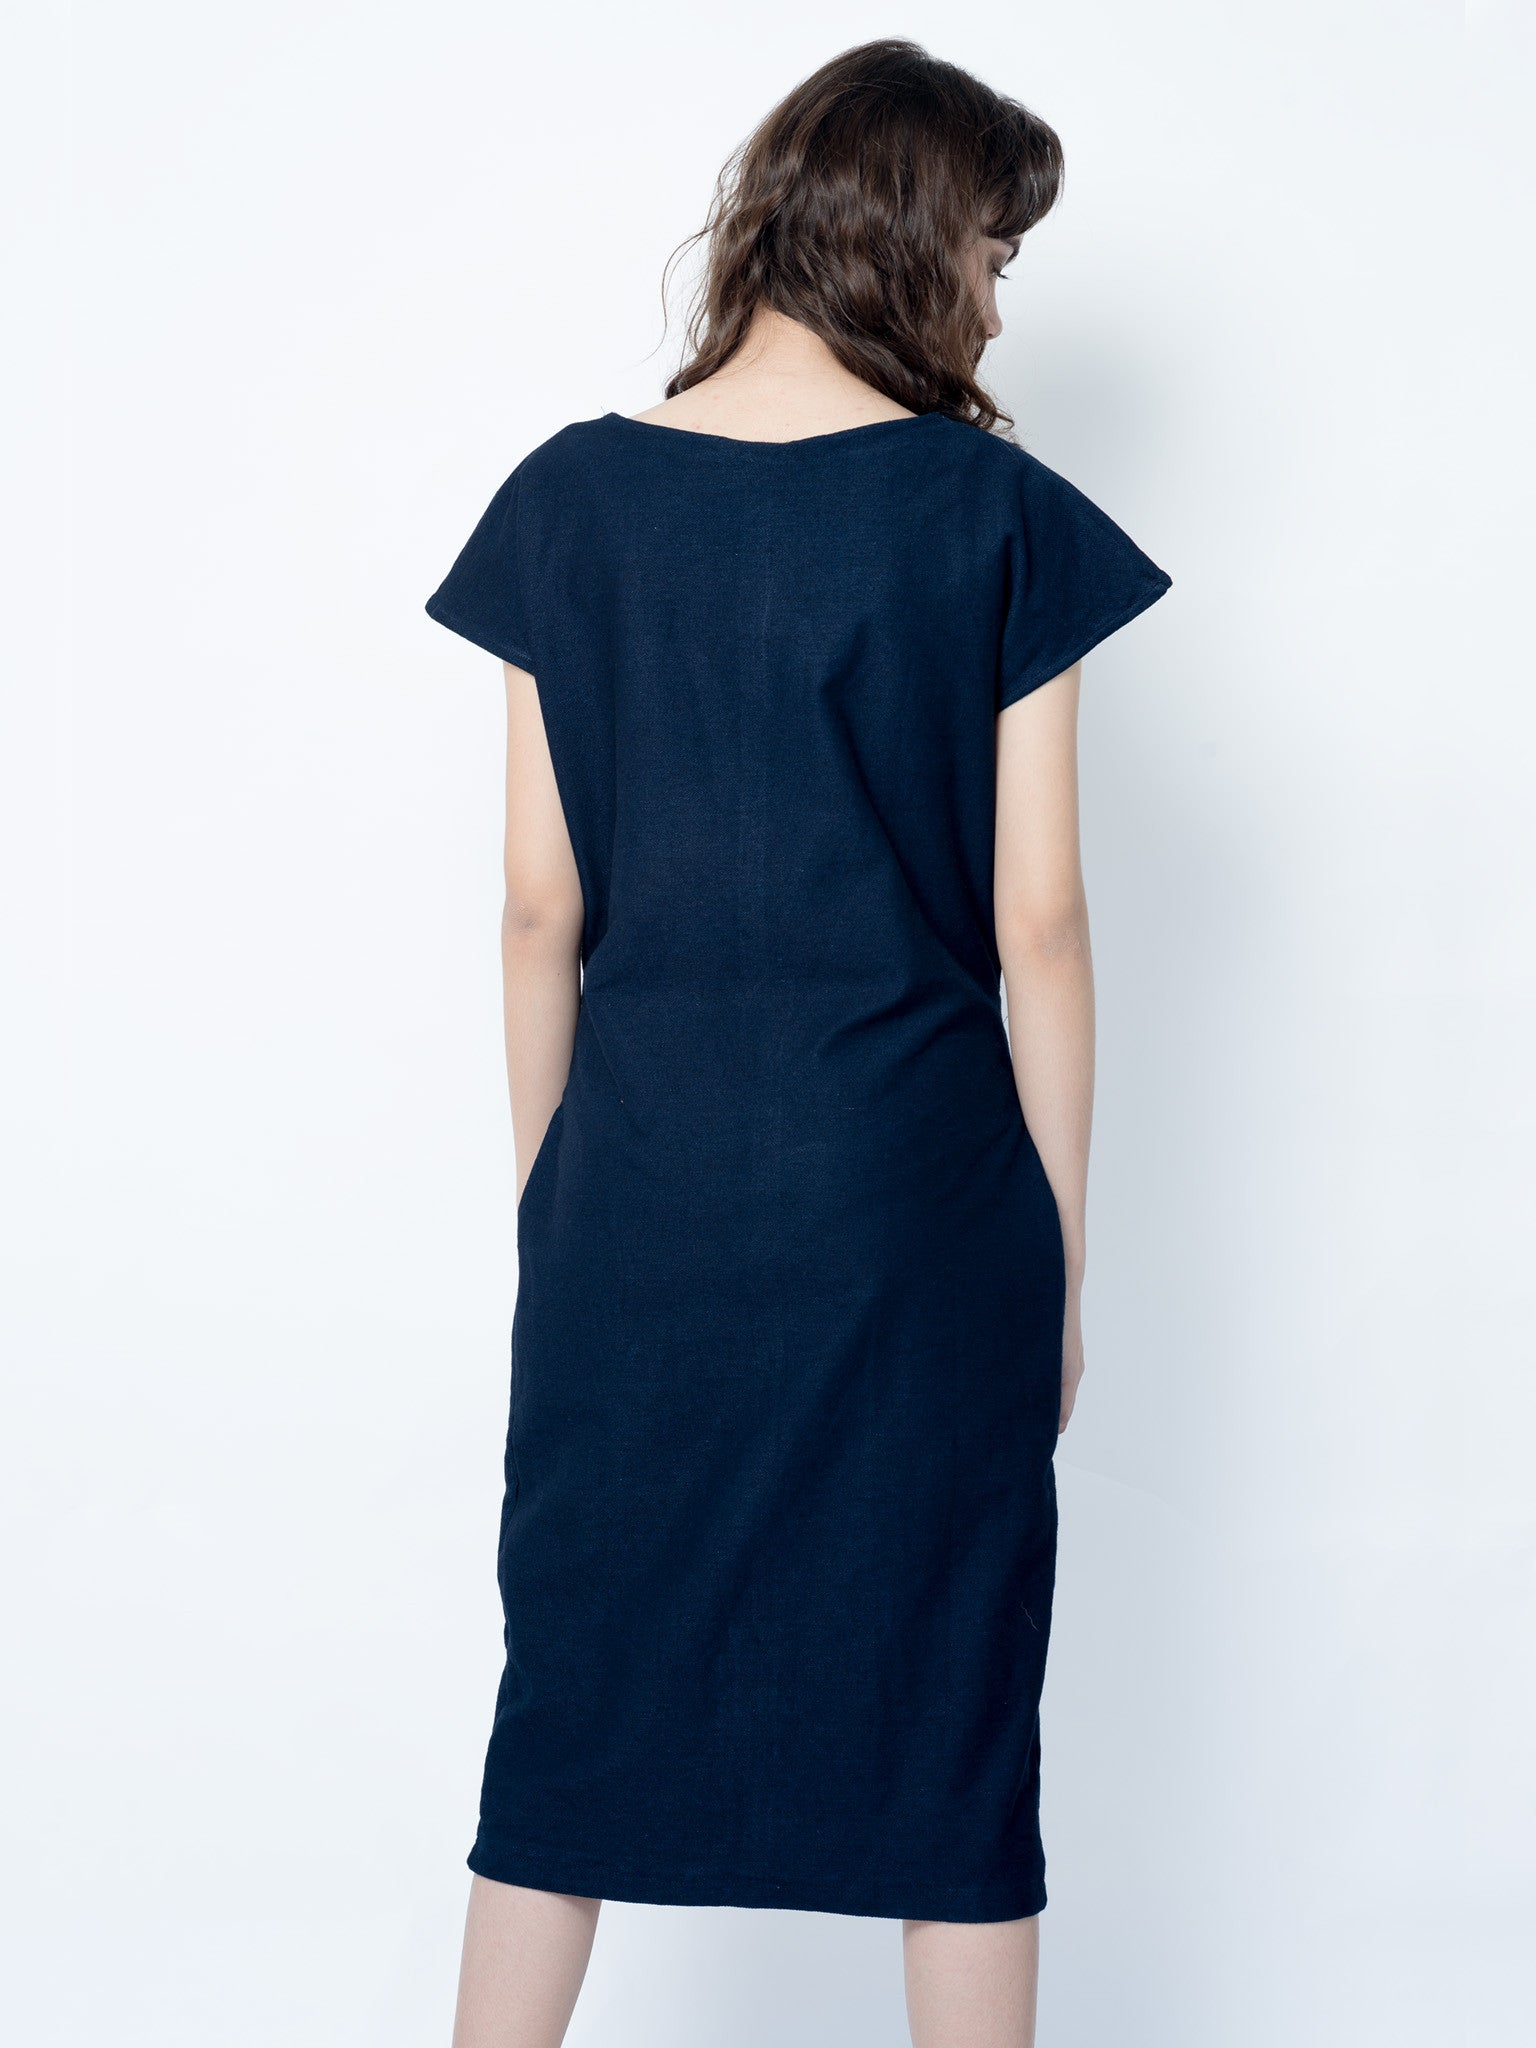 Ola Knot Dress